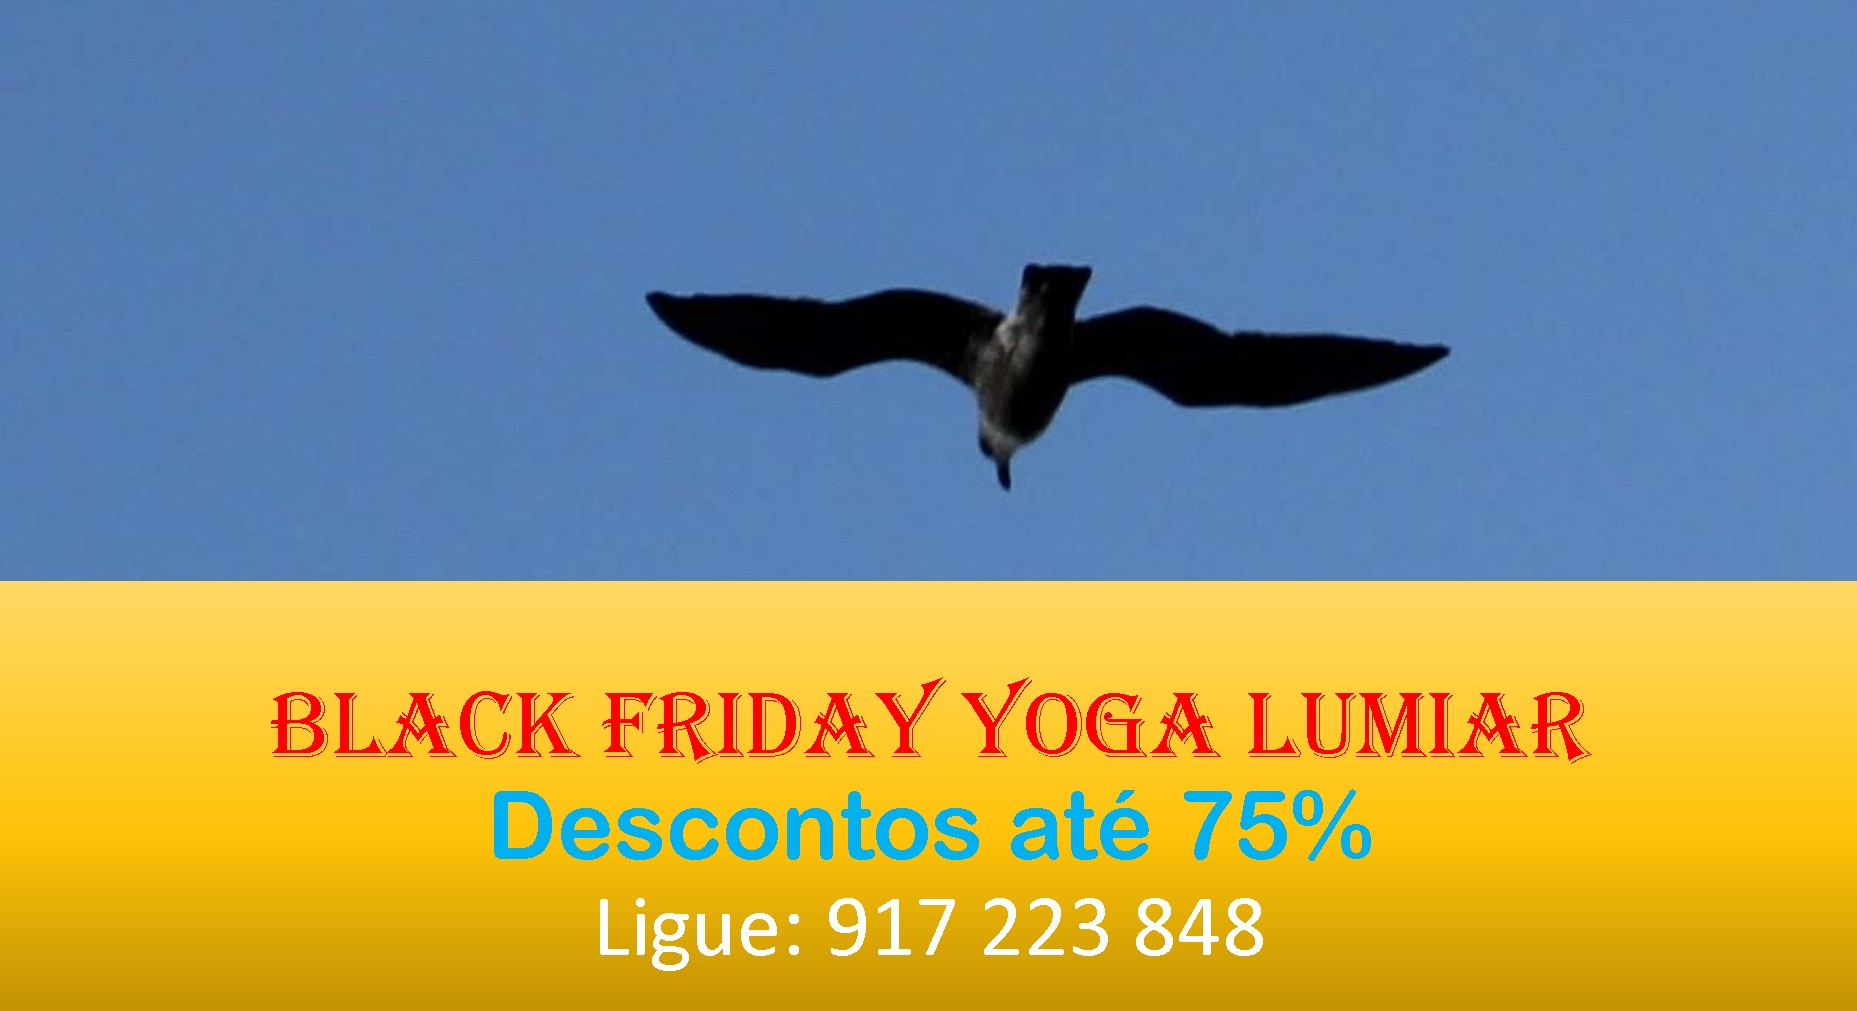 Black Friday Yoga Lumiar